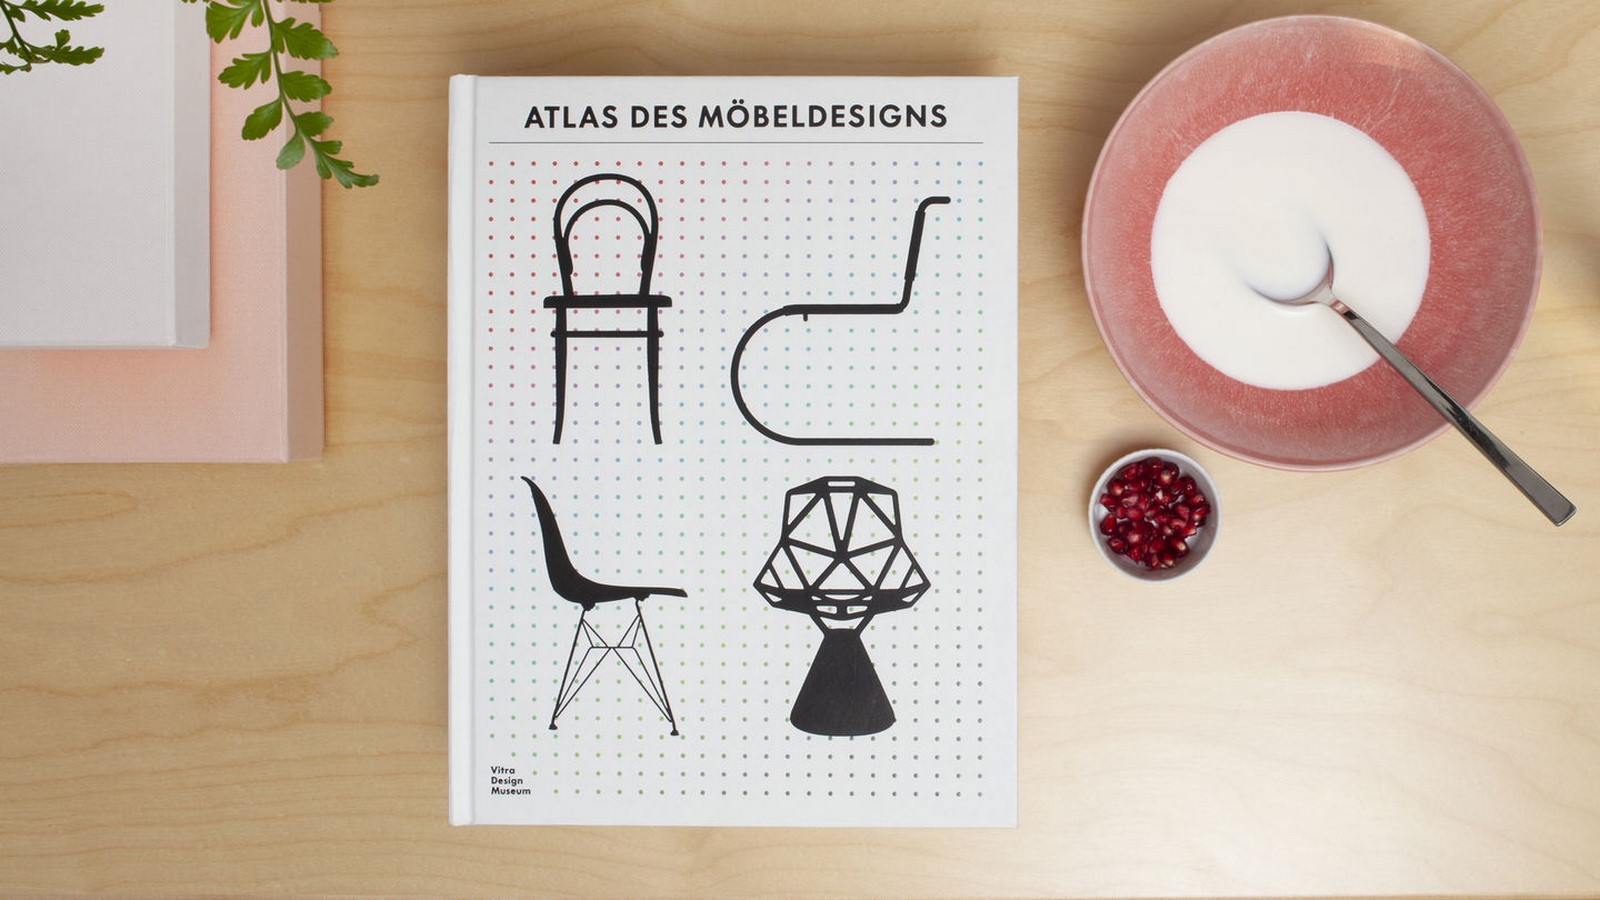 10 Books related to Furniture Design everyone should read Sheet1